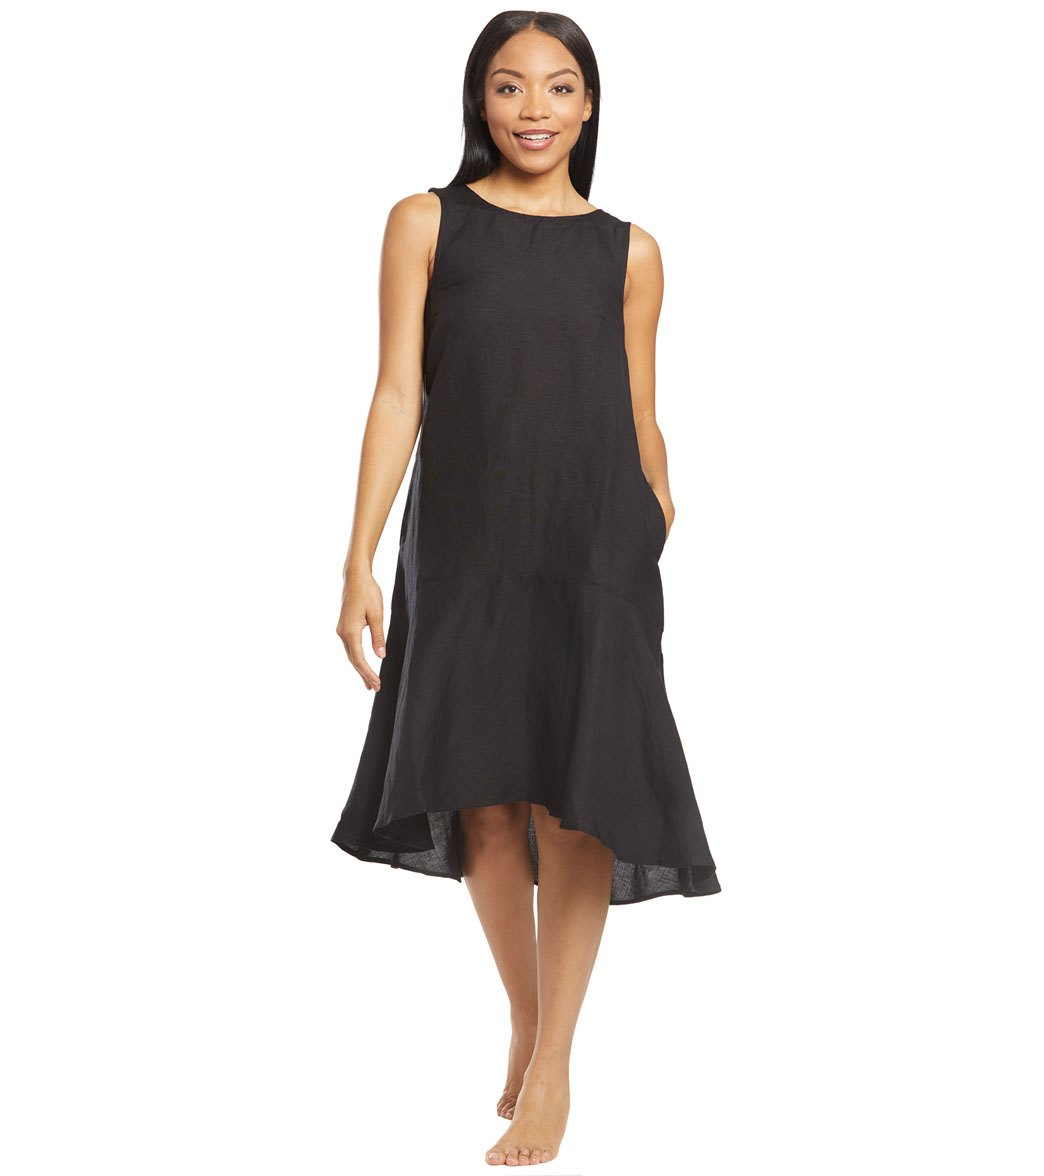 b42a6e6f49 Tommy Bahama Linen Garment Dye Flounce Cover Up Dress at SwimOutlet.com - Free  Shipping